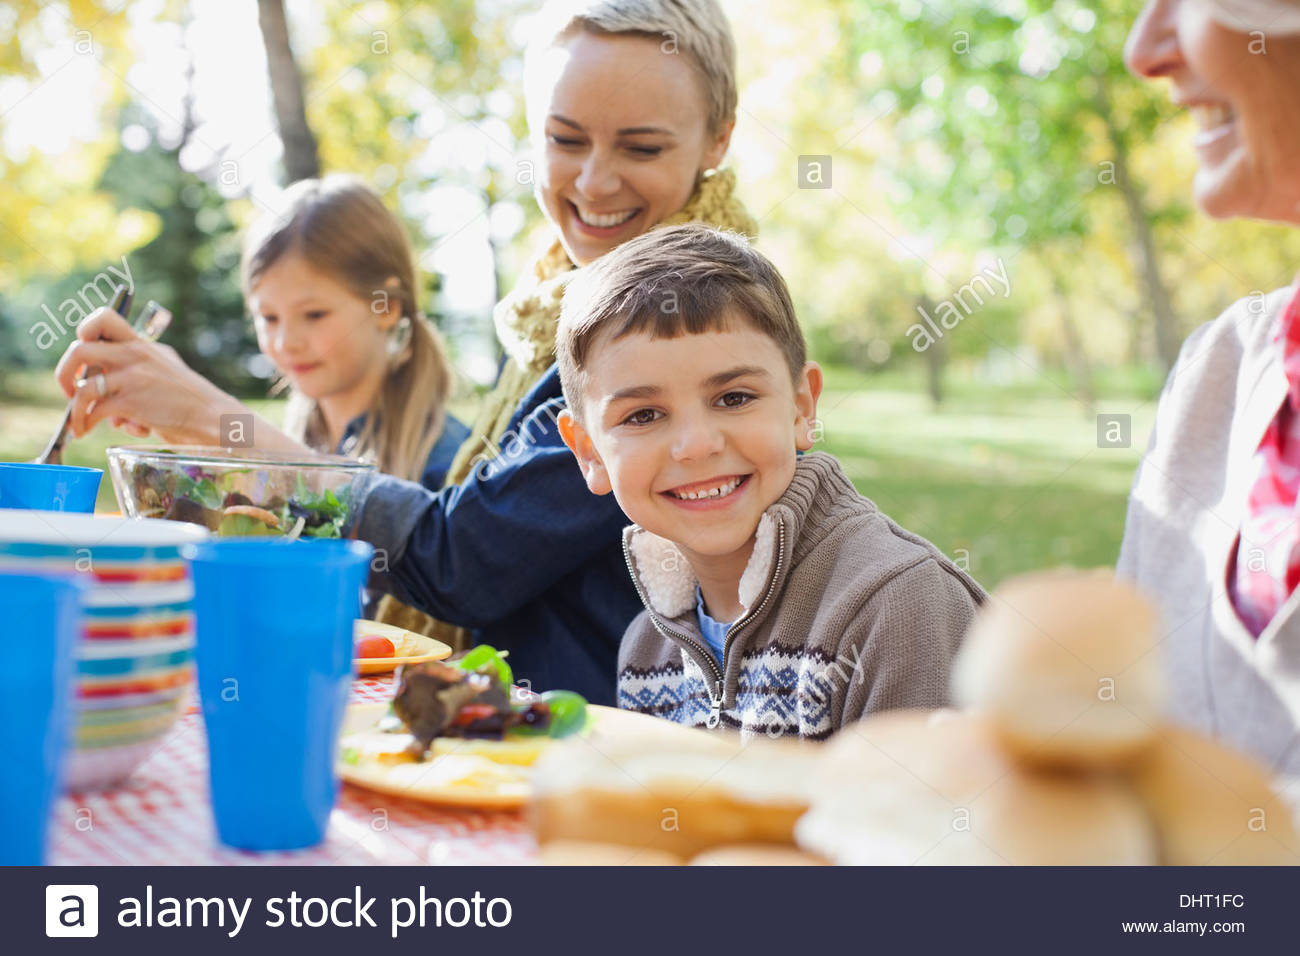 Portrait of happy boy with in park Photo Stock